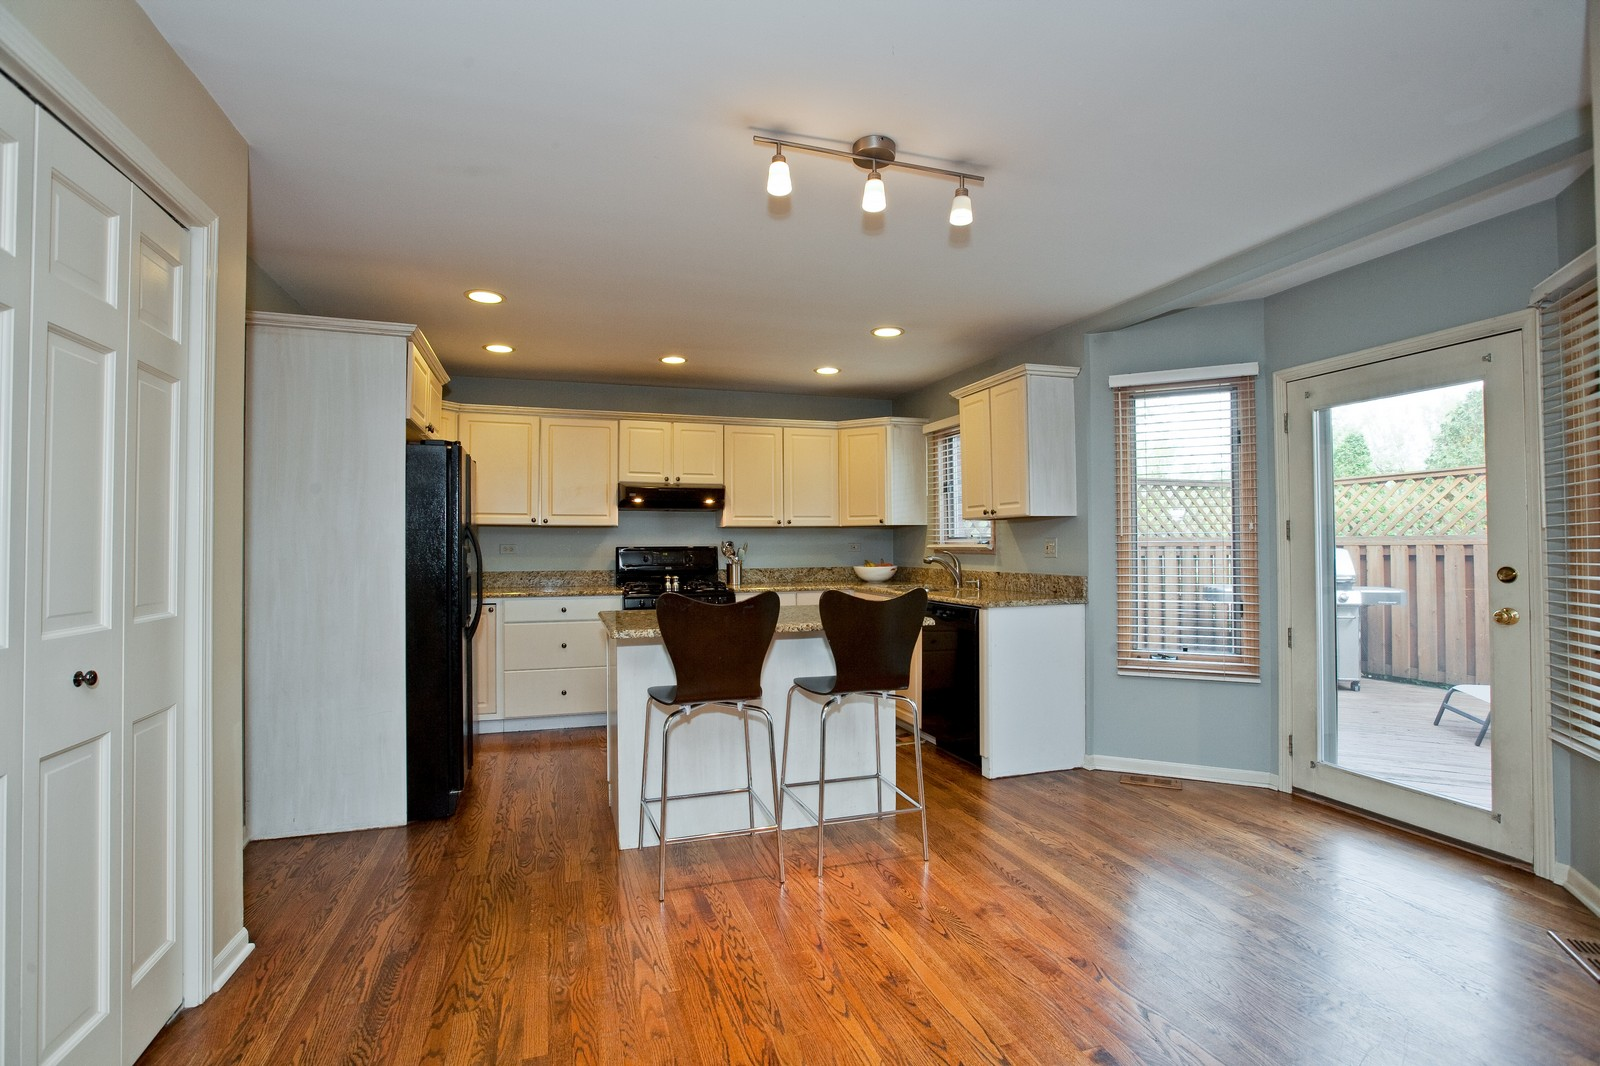 Real Estate Photography - 1031 W. 119th St, Lemont, IL, 60439 - Kitchen / Breakfast Room